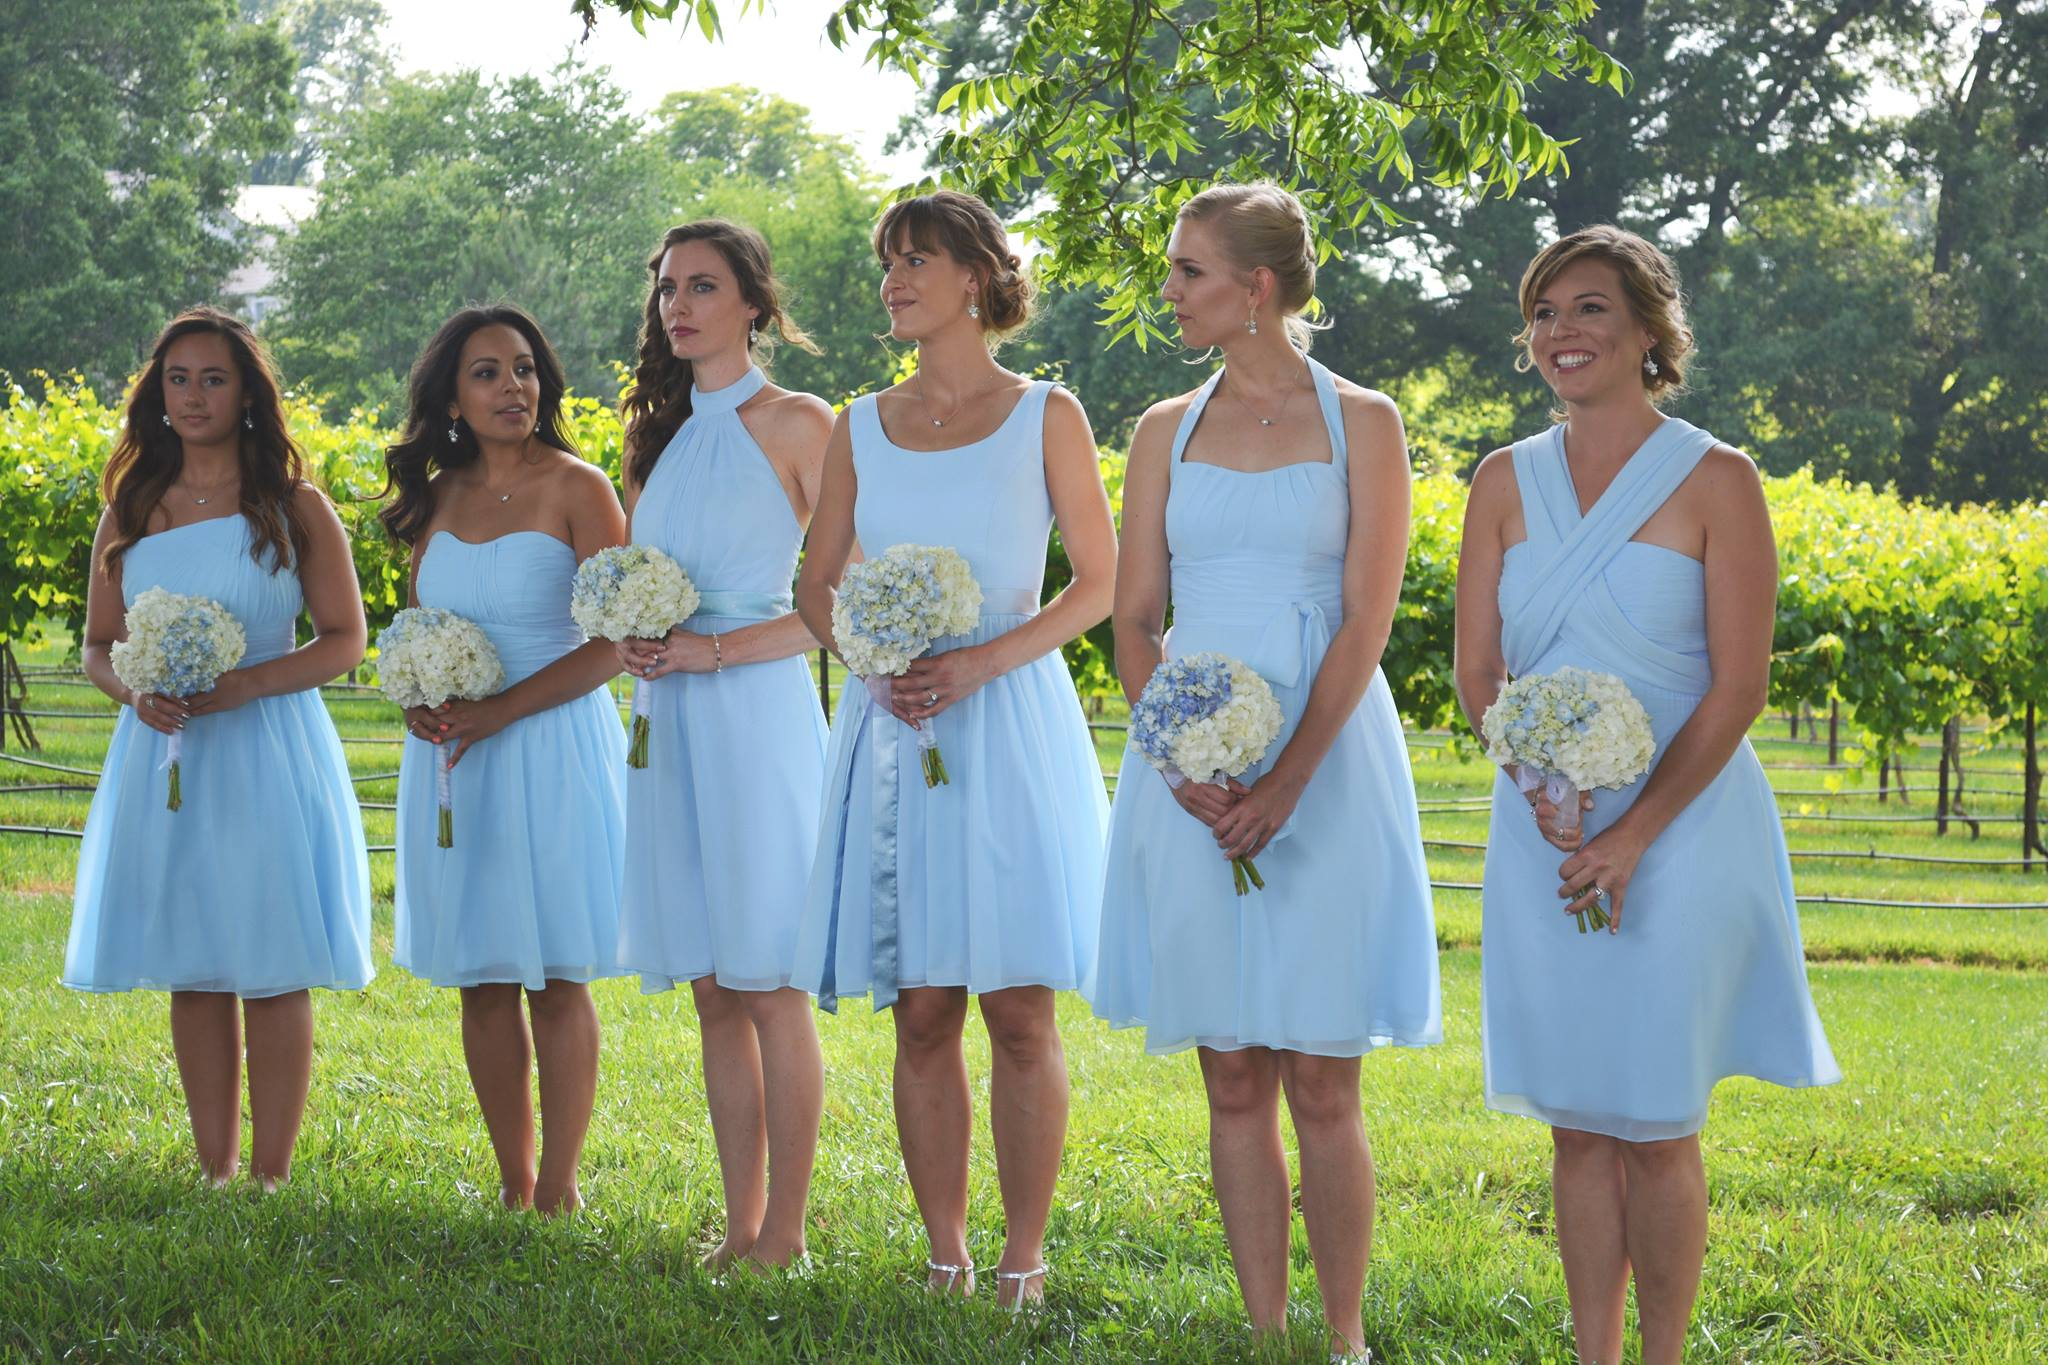 AZAZIE sky blue bridesmaid dresses